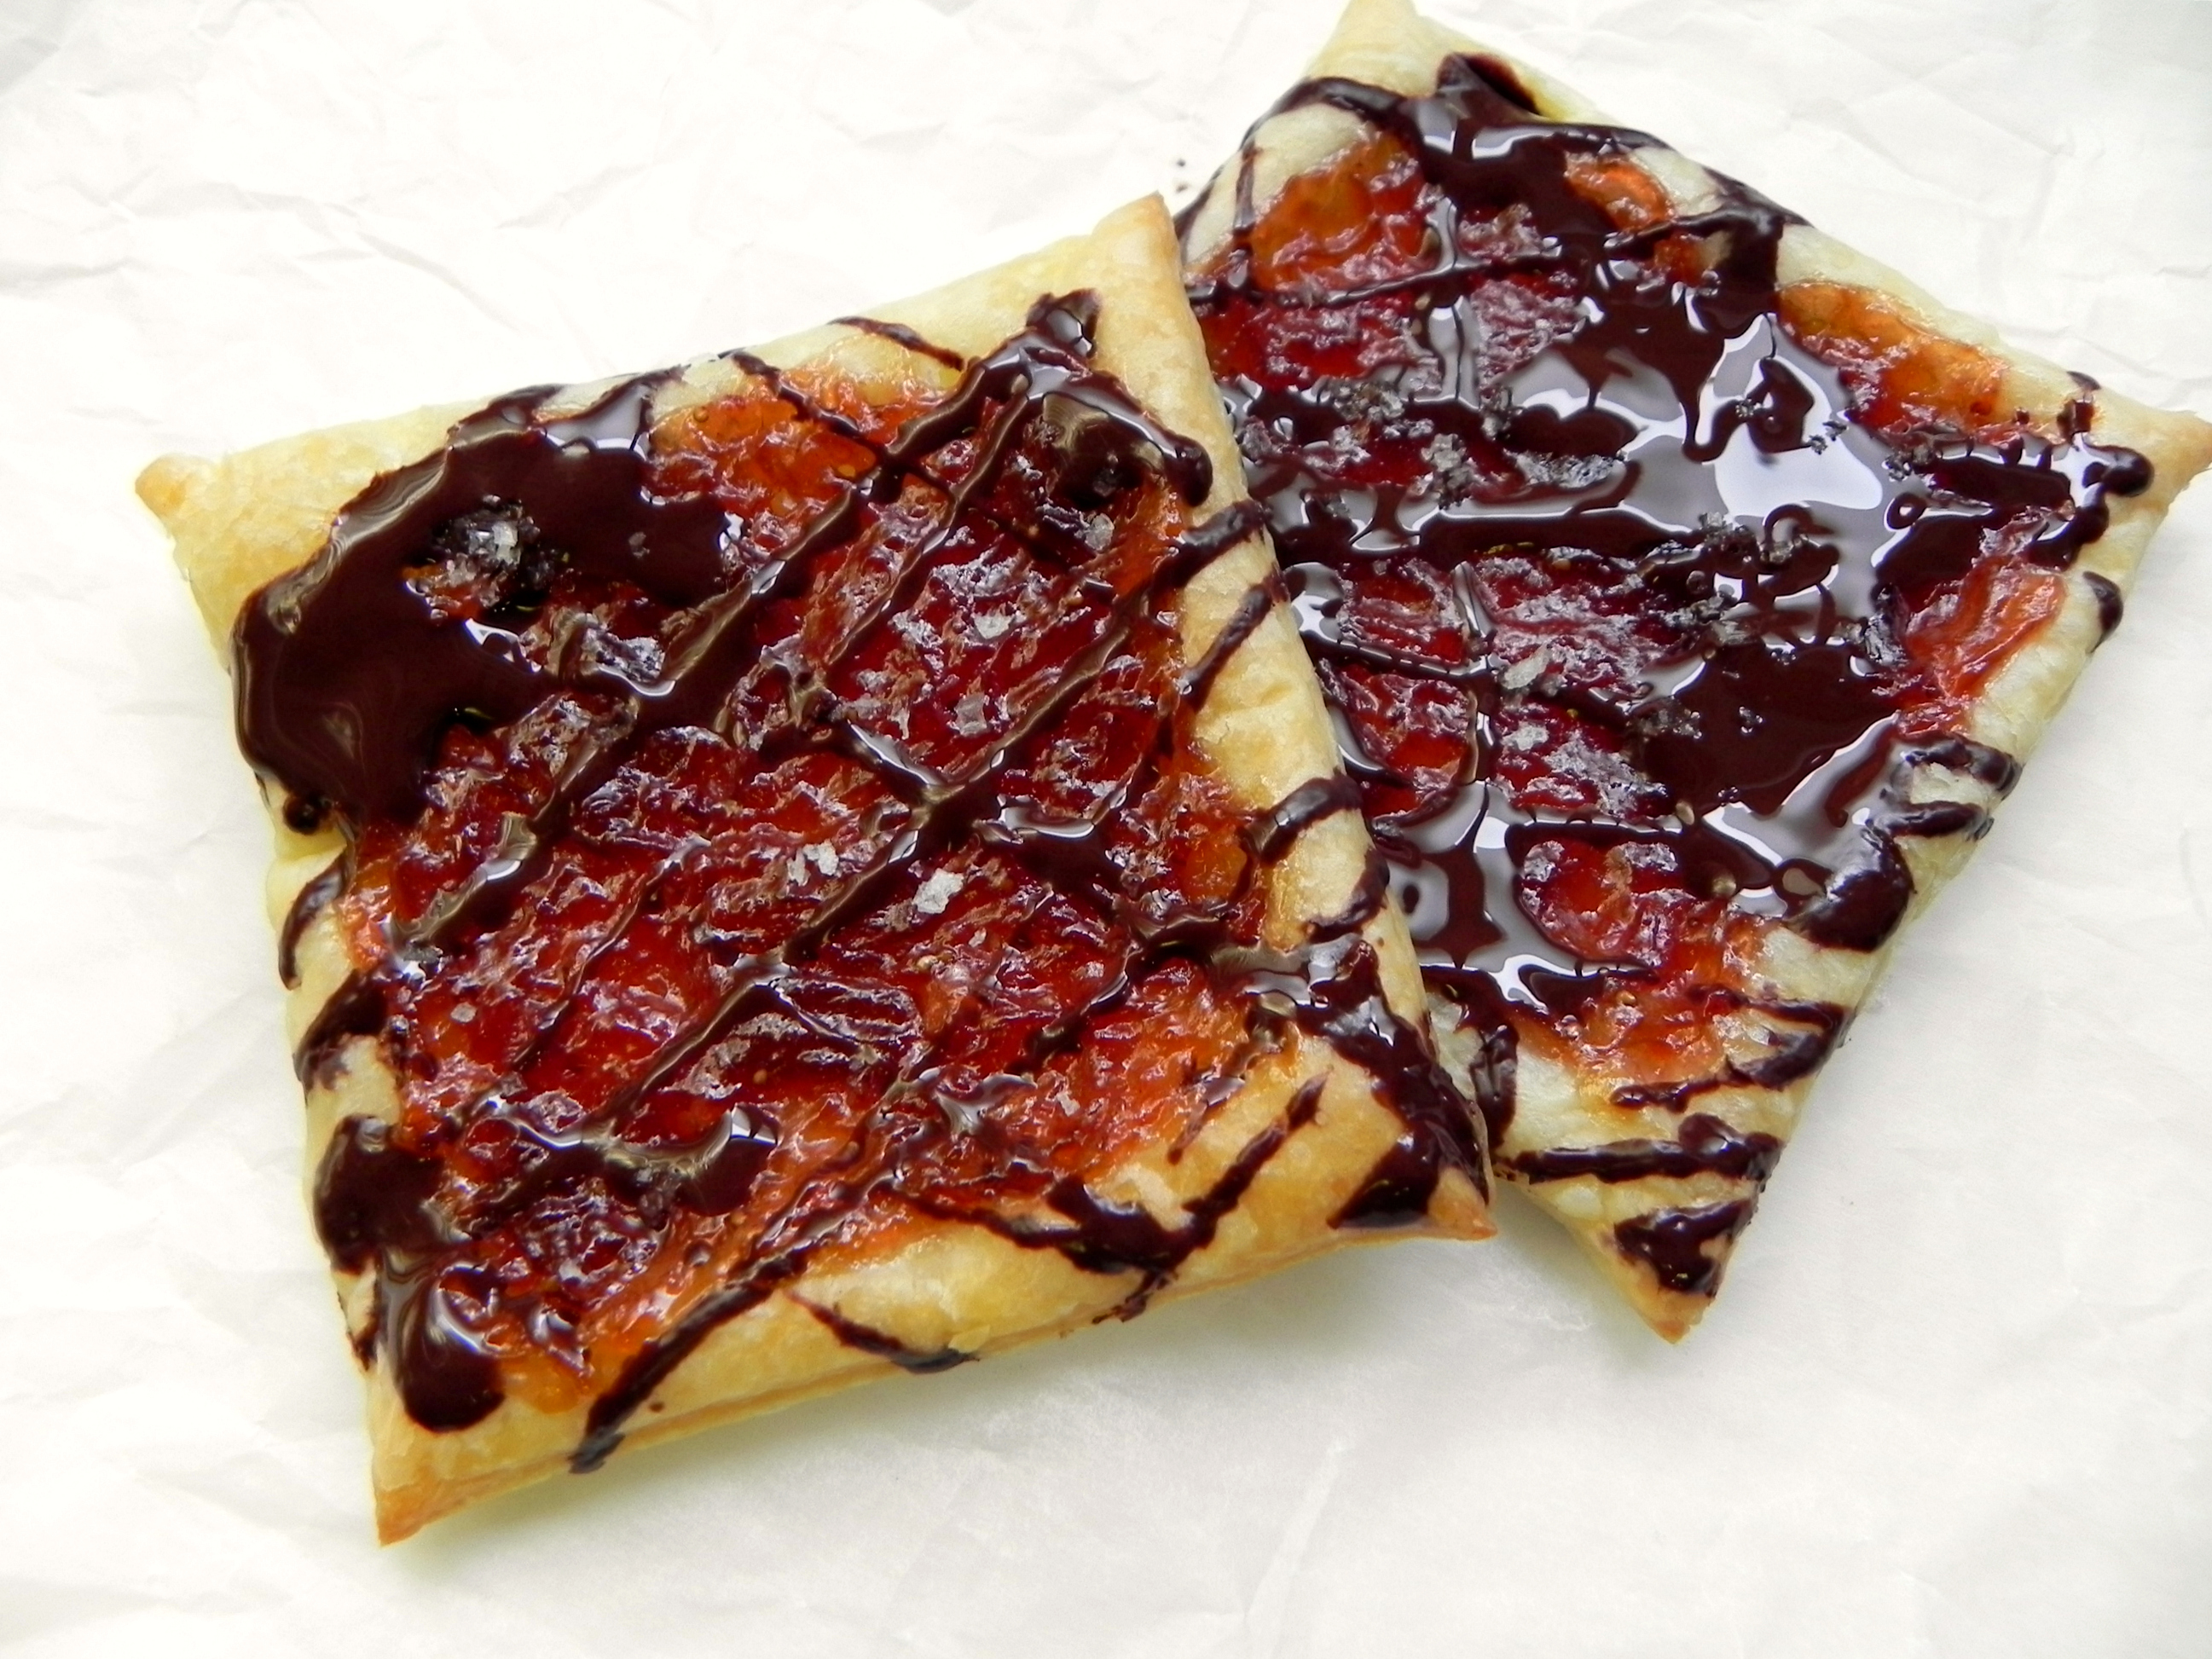 Quick cake with jam. Pastry Jam: A Simple Recipe 90